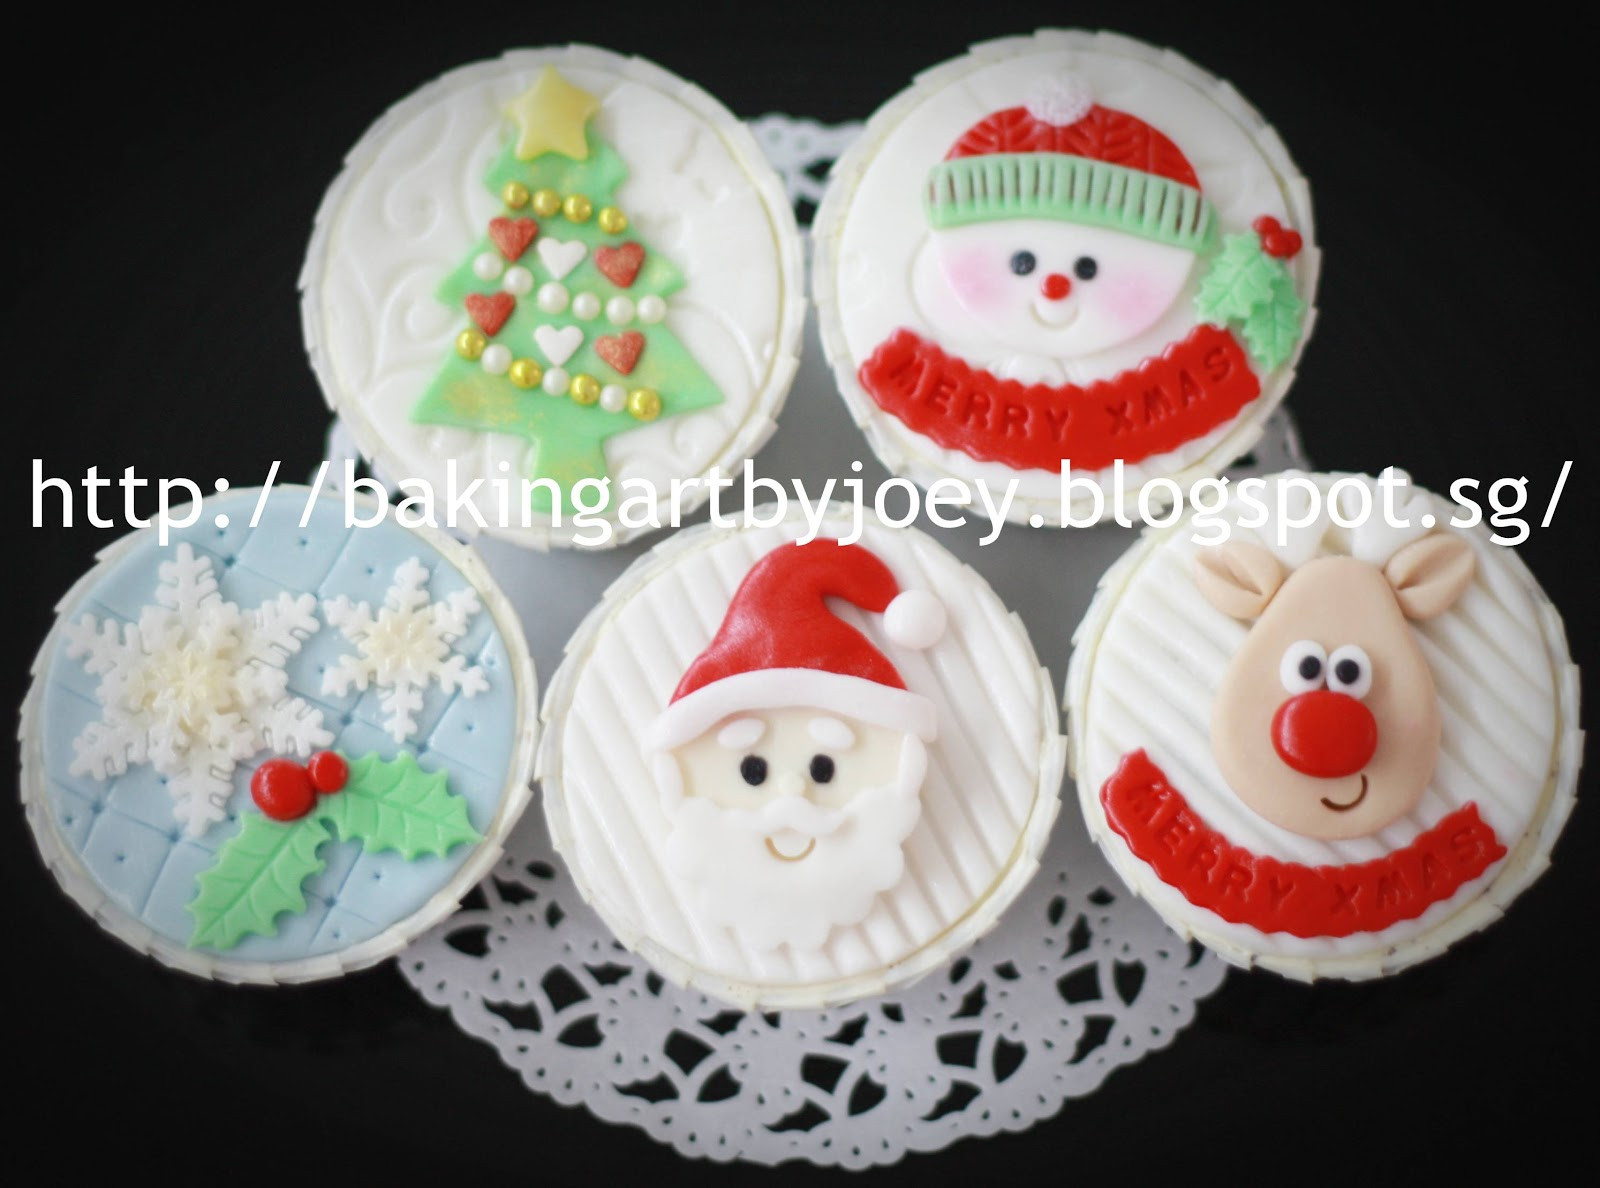 Christmas Themed Cupcakes  Baking Art by Joey Christmas Themed cupcakes